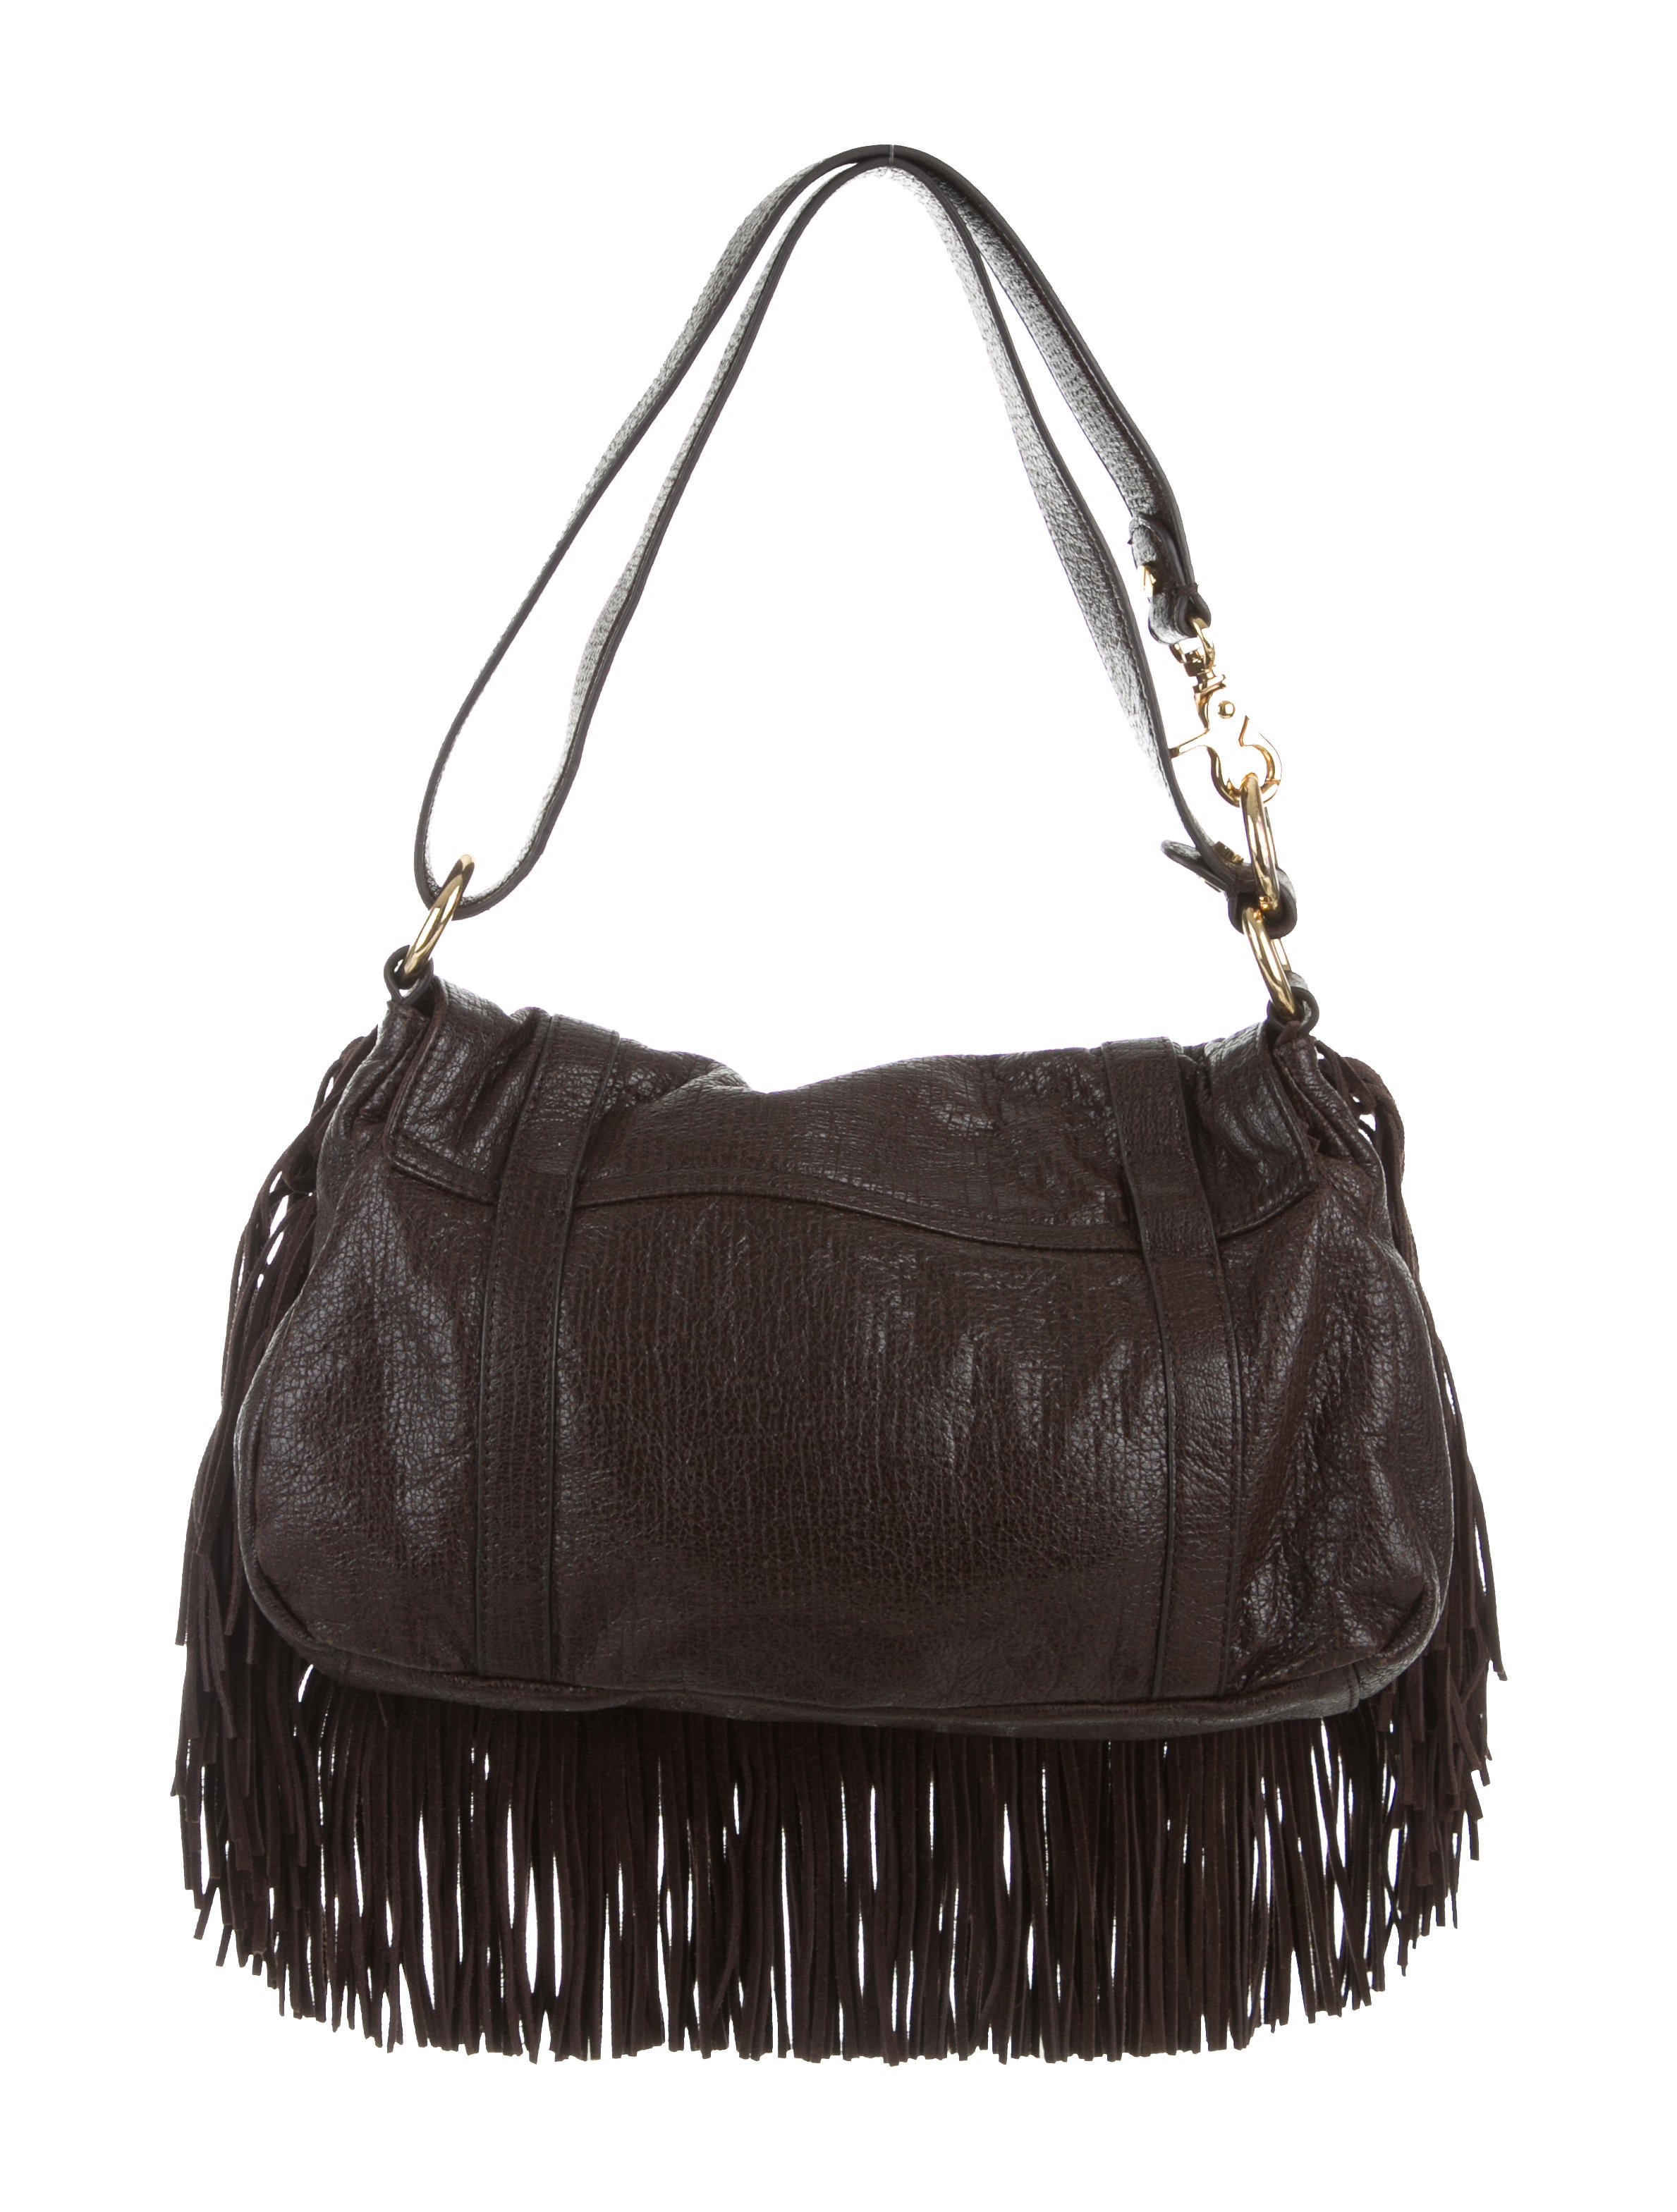 You searched for: fringe bag! Etsy is the home to thousands of handmade, vintage, and one-of-a-kind products and gifts related to your search. No matter what you're looking for or where you are in the world, our global marketplace of sellers can help you find unique and affordable options. Let's get started!